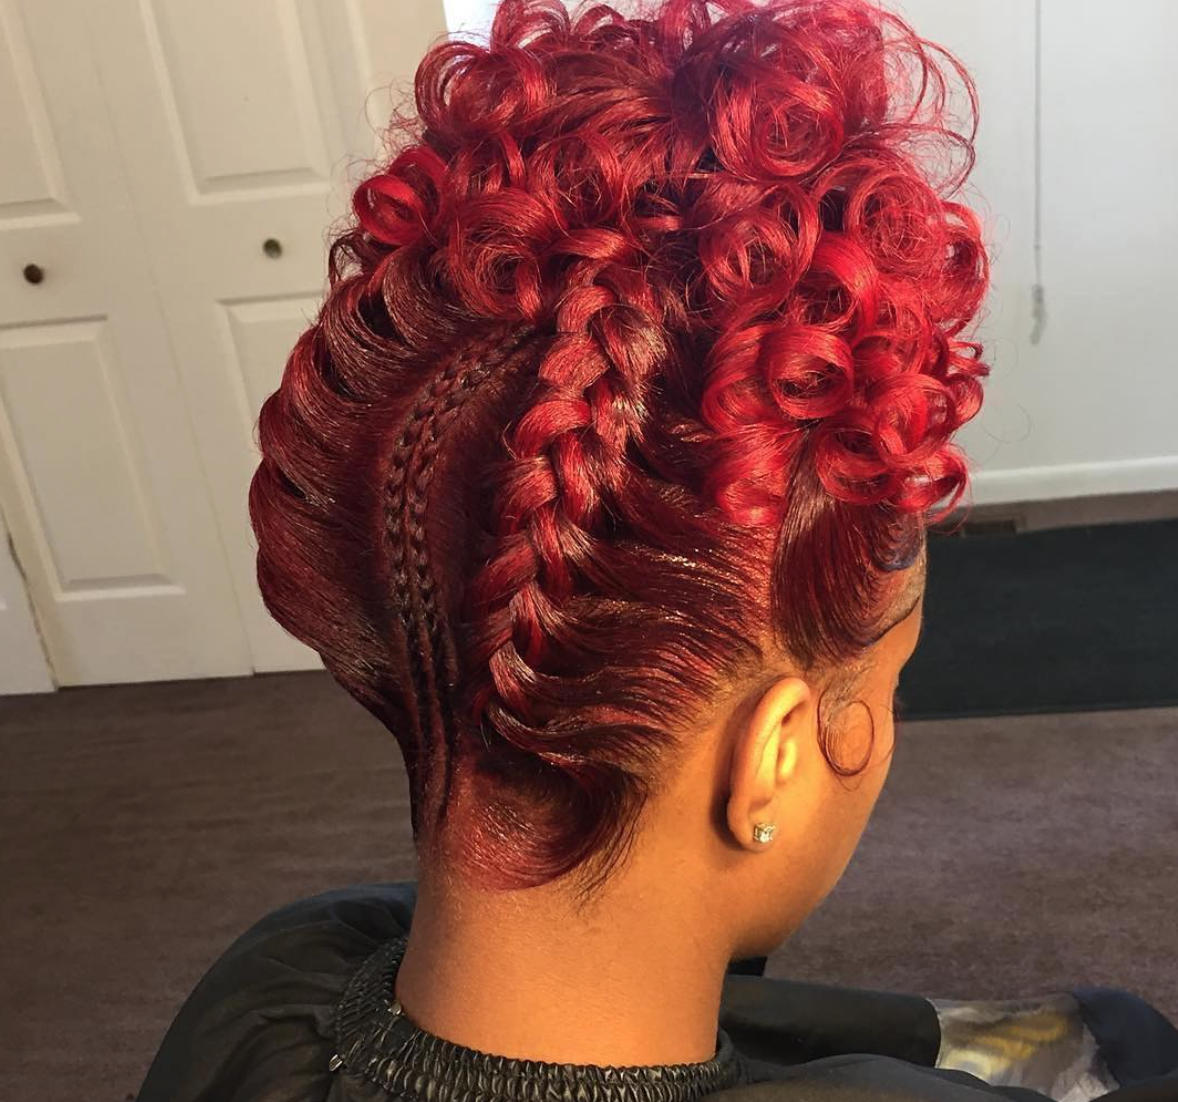 @thehairqueen